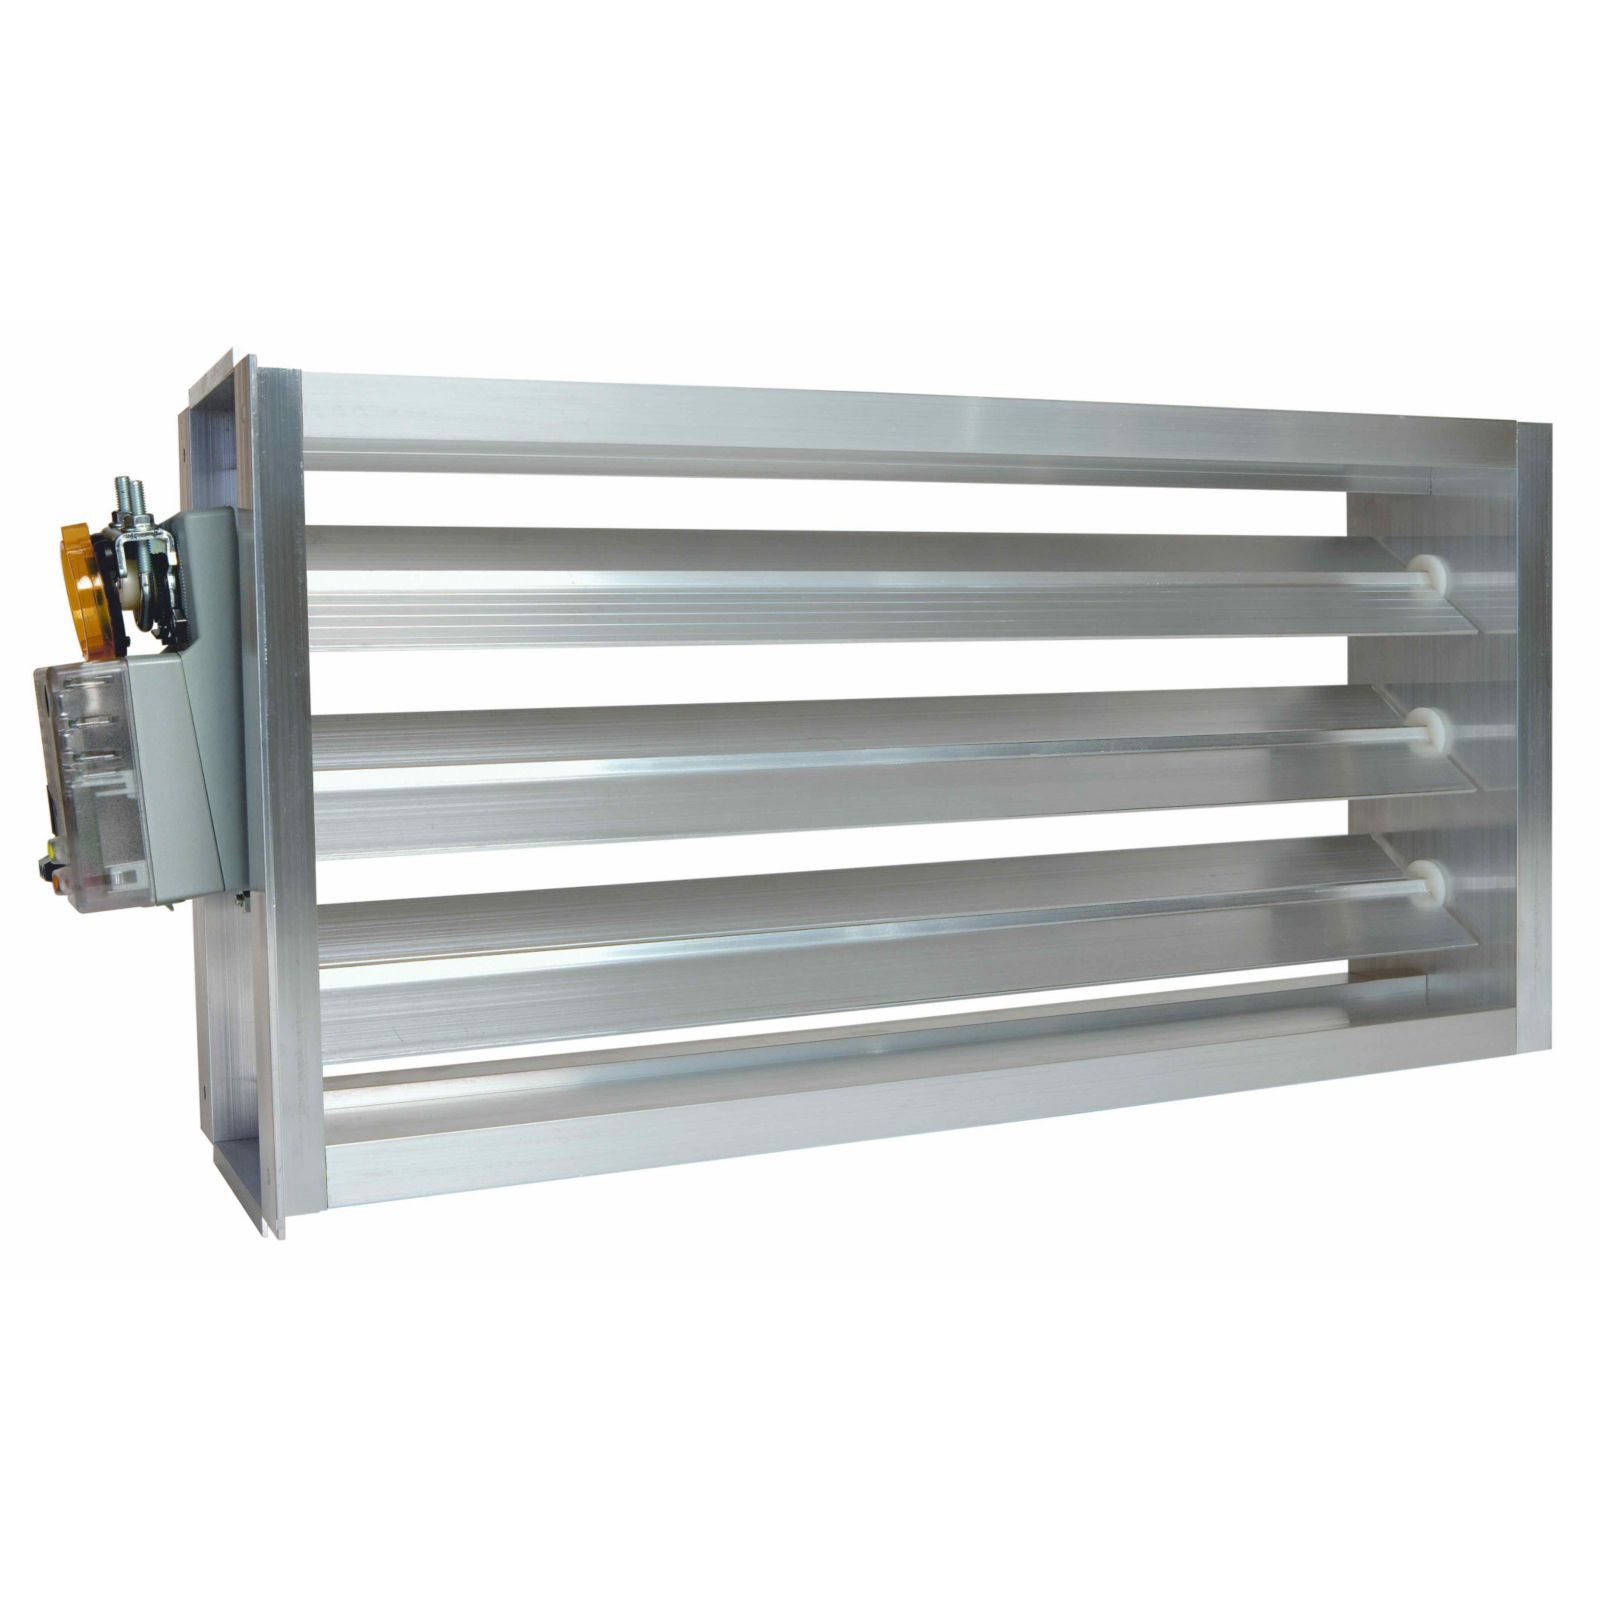 "EWC 12X6 ND - Motorized Ultra-Zone Damper, 12"" X 6"""